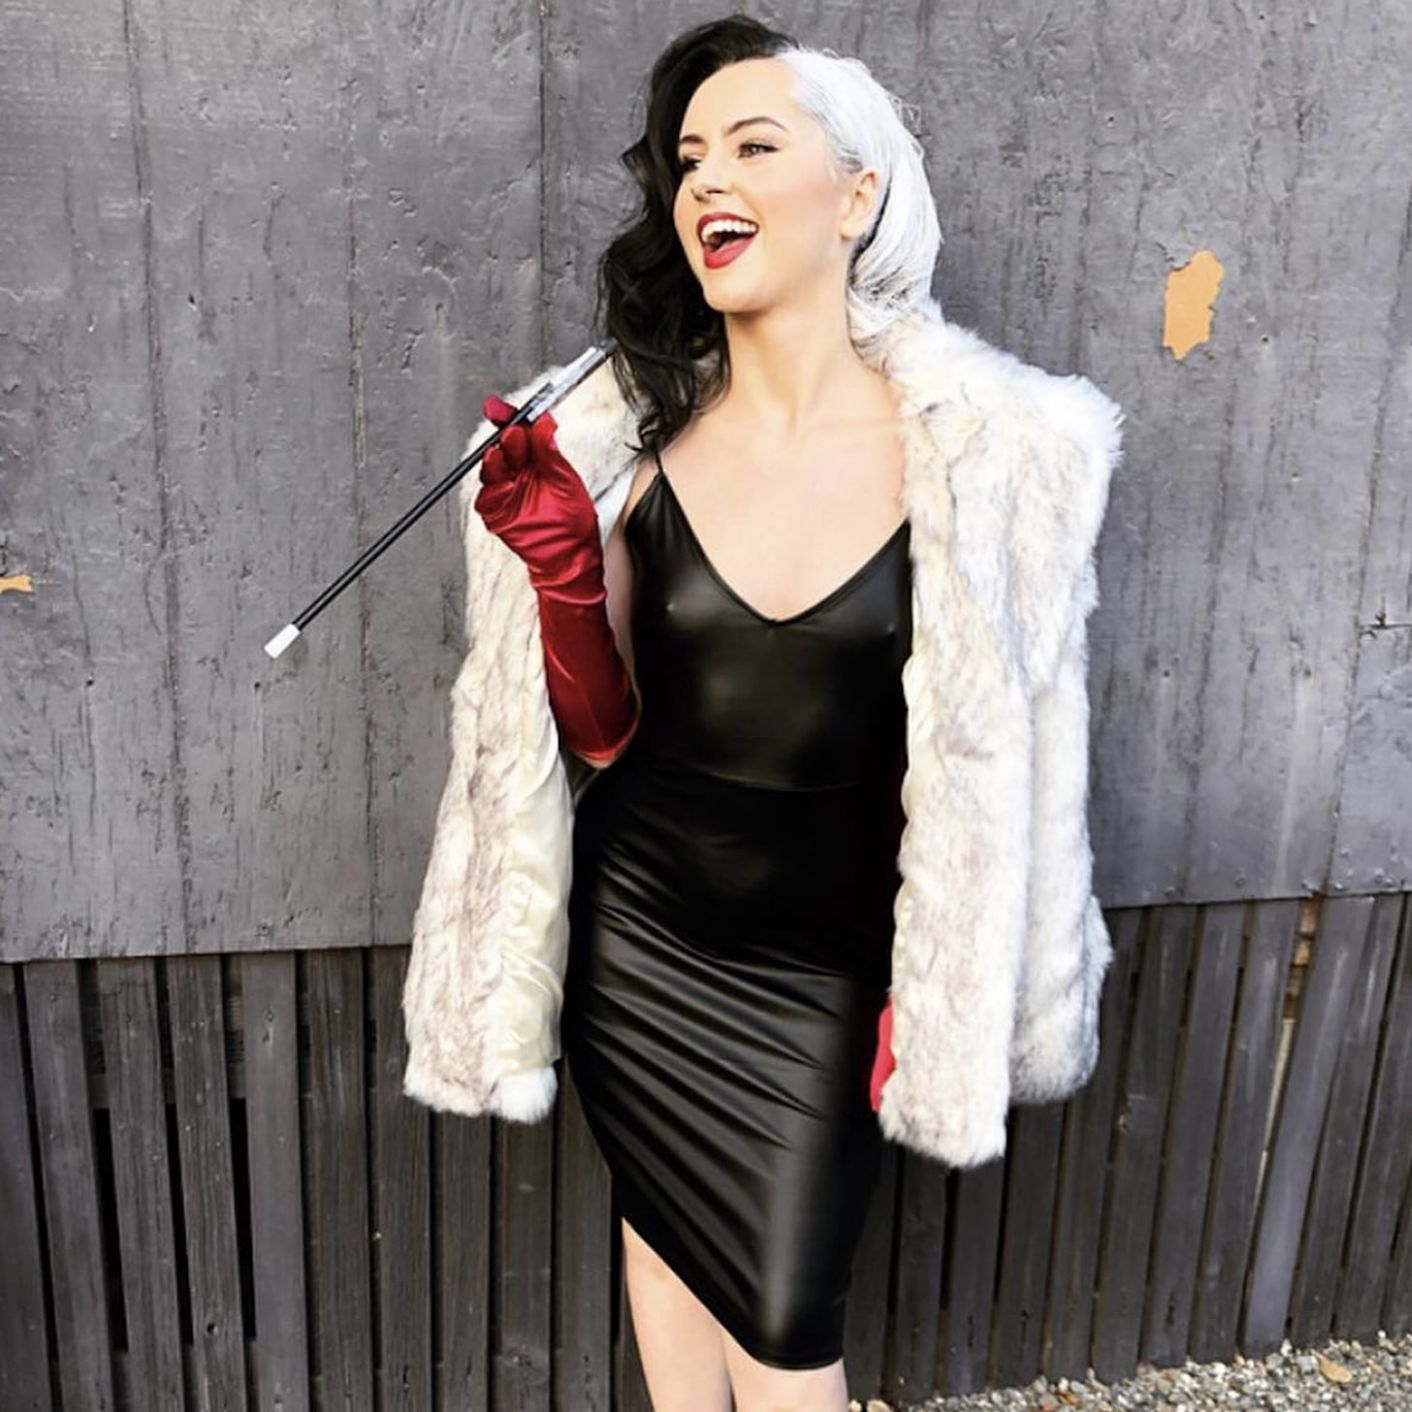 Halloween Costume Ideas With a Little Black Dress | POPSUGAR Fashion